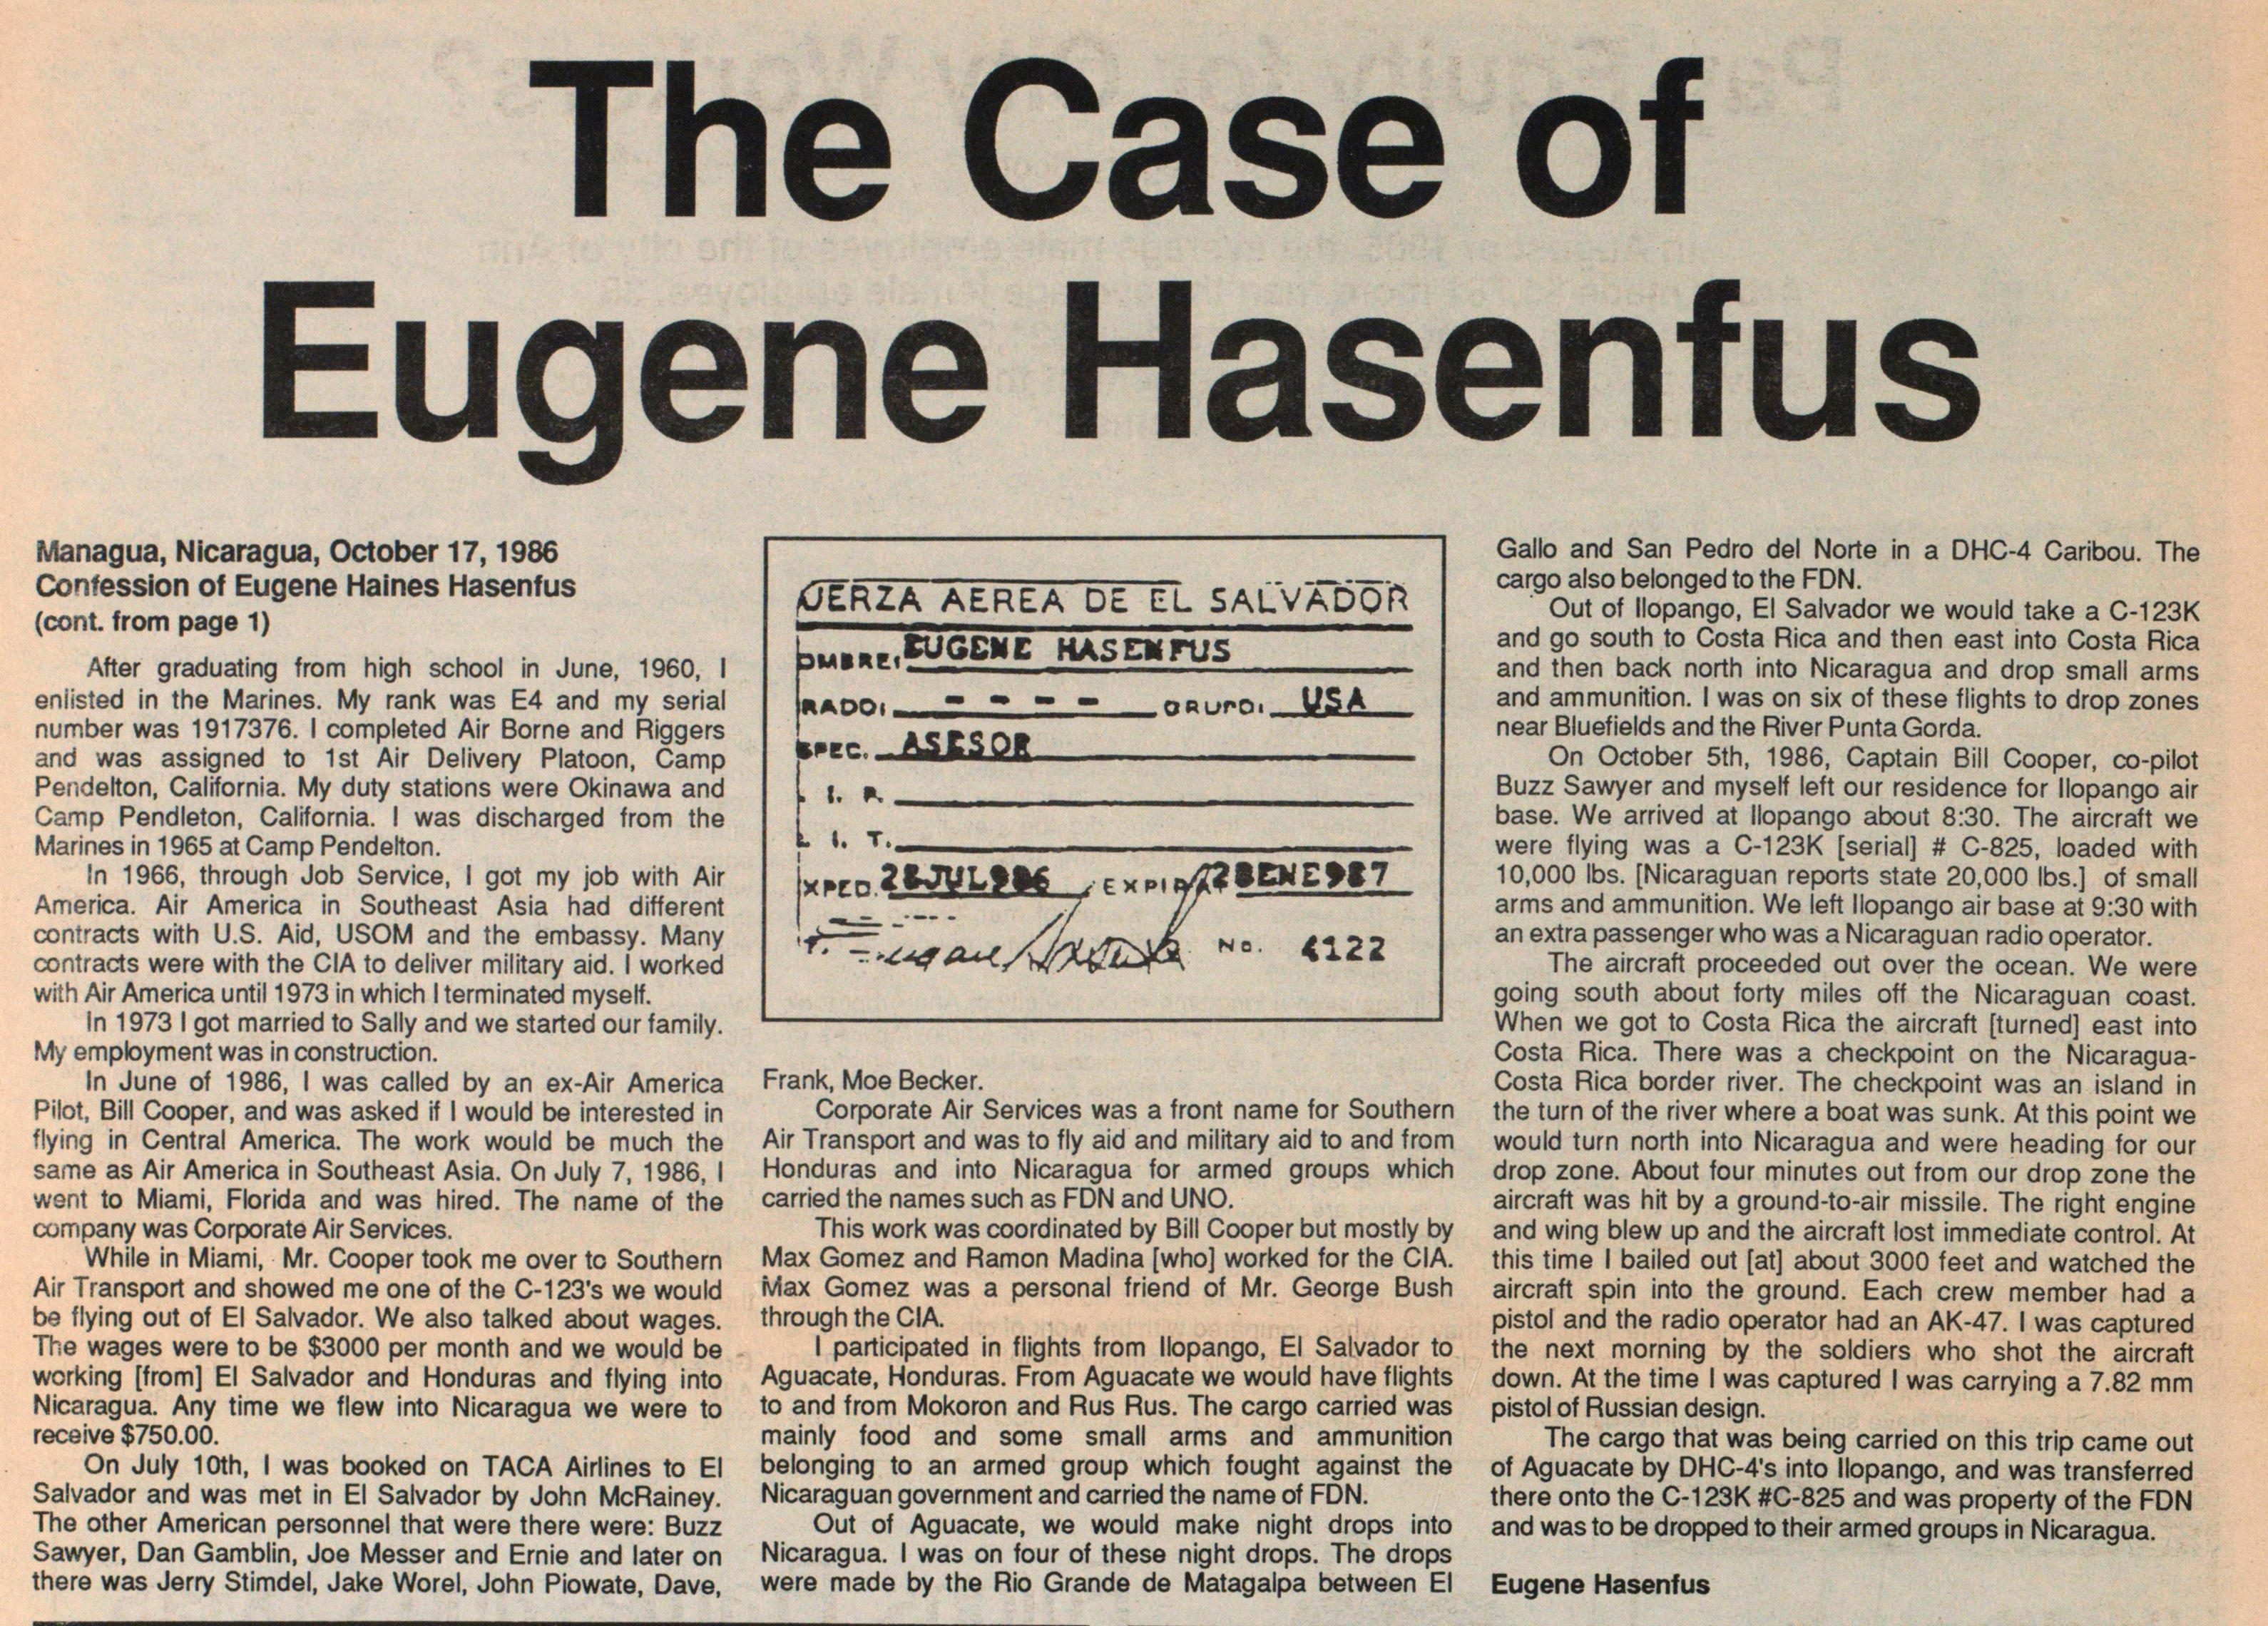 The Confession Of Eugene Hasenfus image